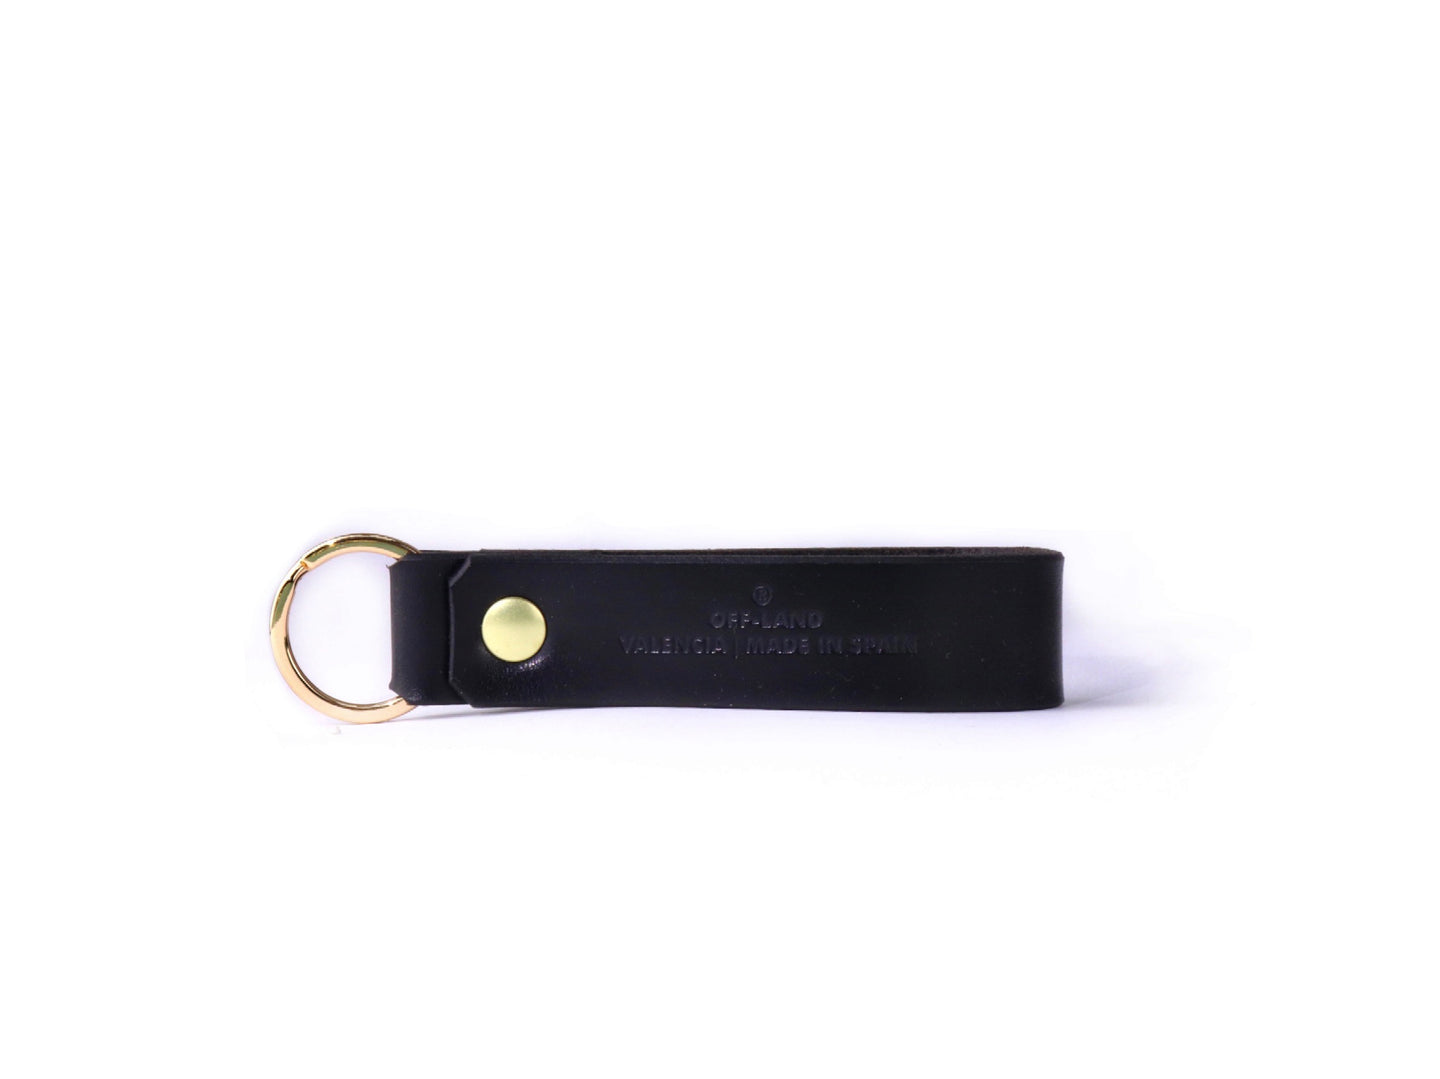 HUMBLE KEYRING - OFF-LAND ® | High-quality & functional accessories